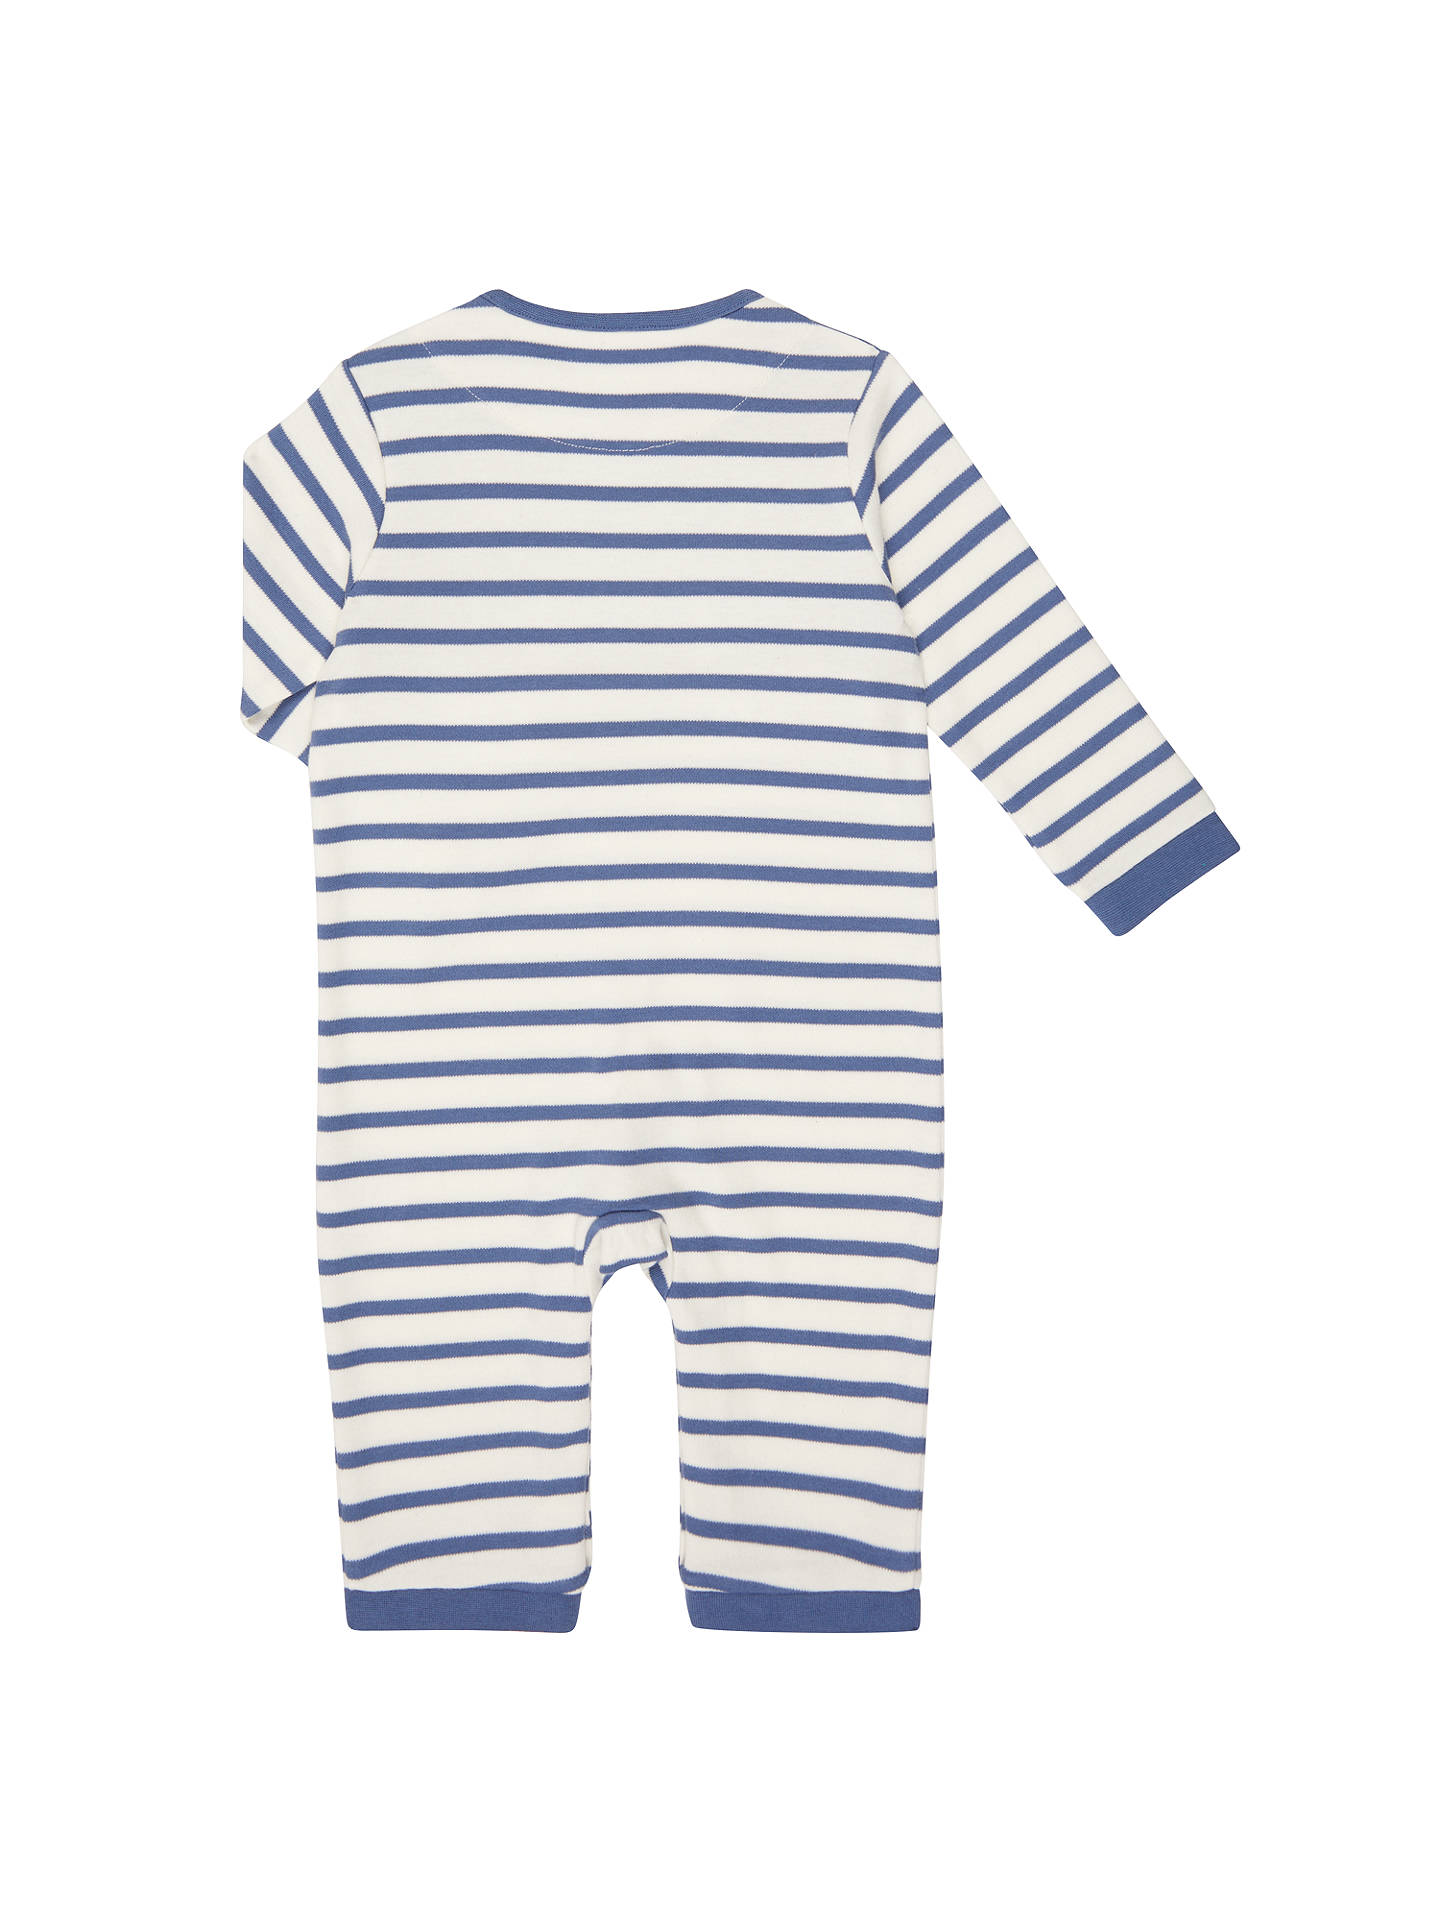 BuyJohn Lewis Baby Stripe Cat Long Sleeve Jersey Romper, Blue/White, Newborn Online at johnlewis.com